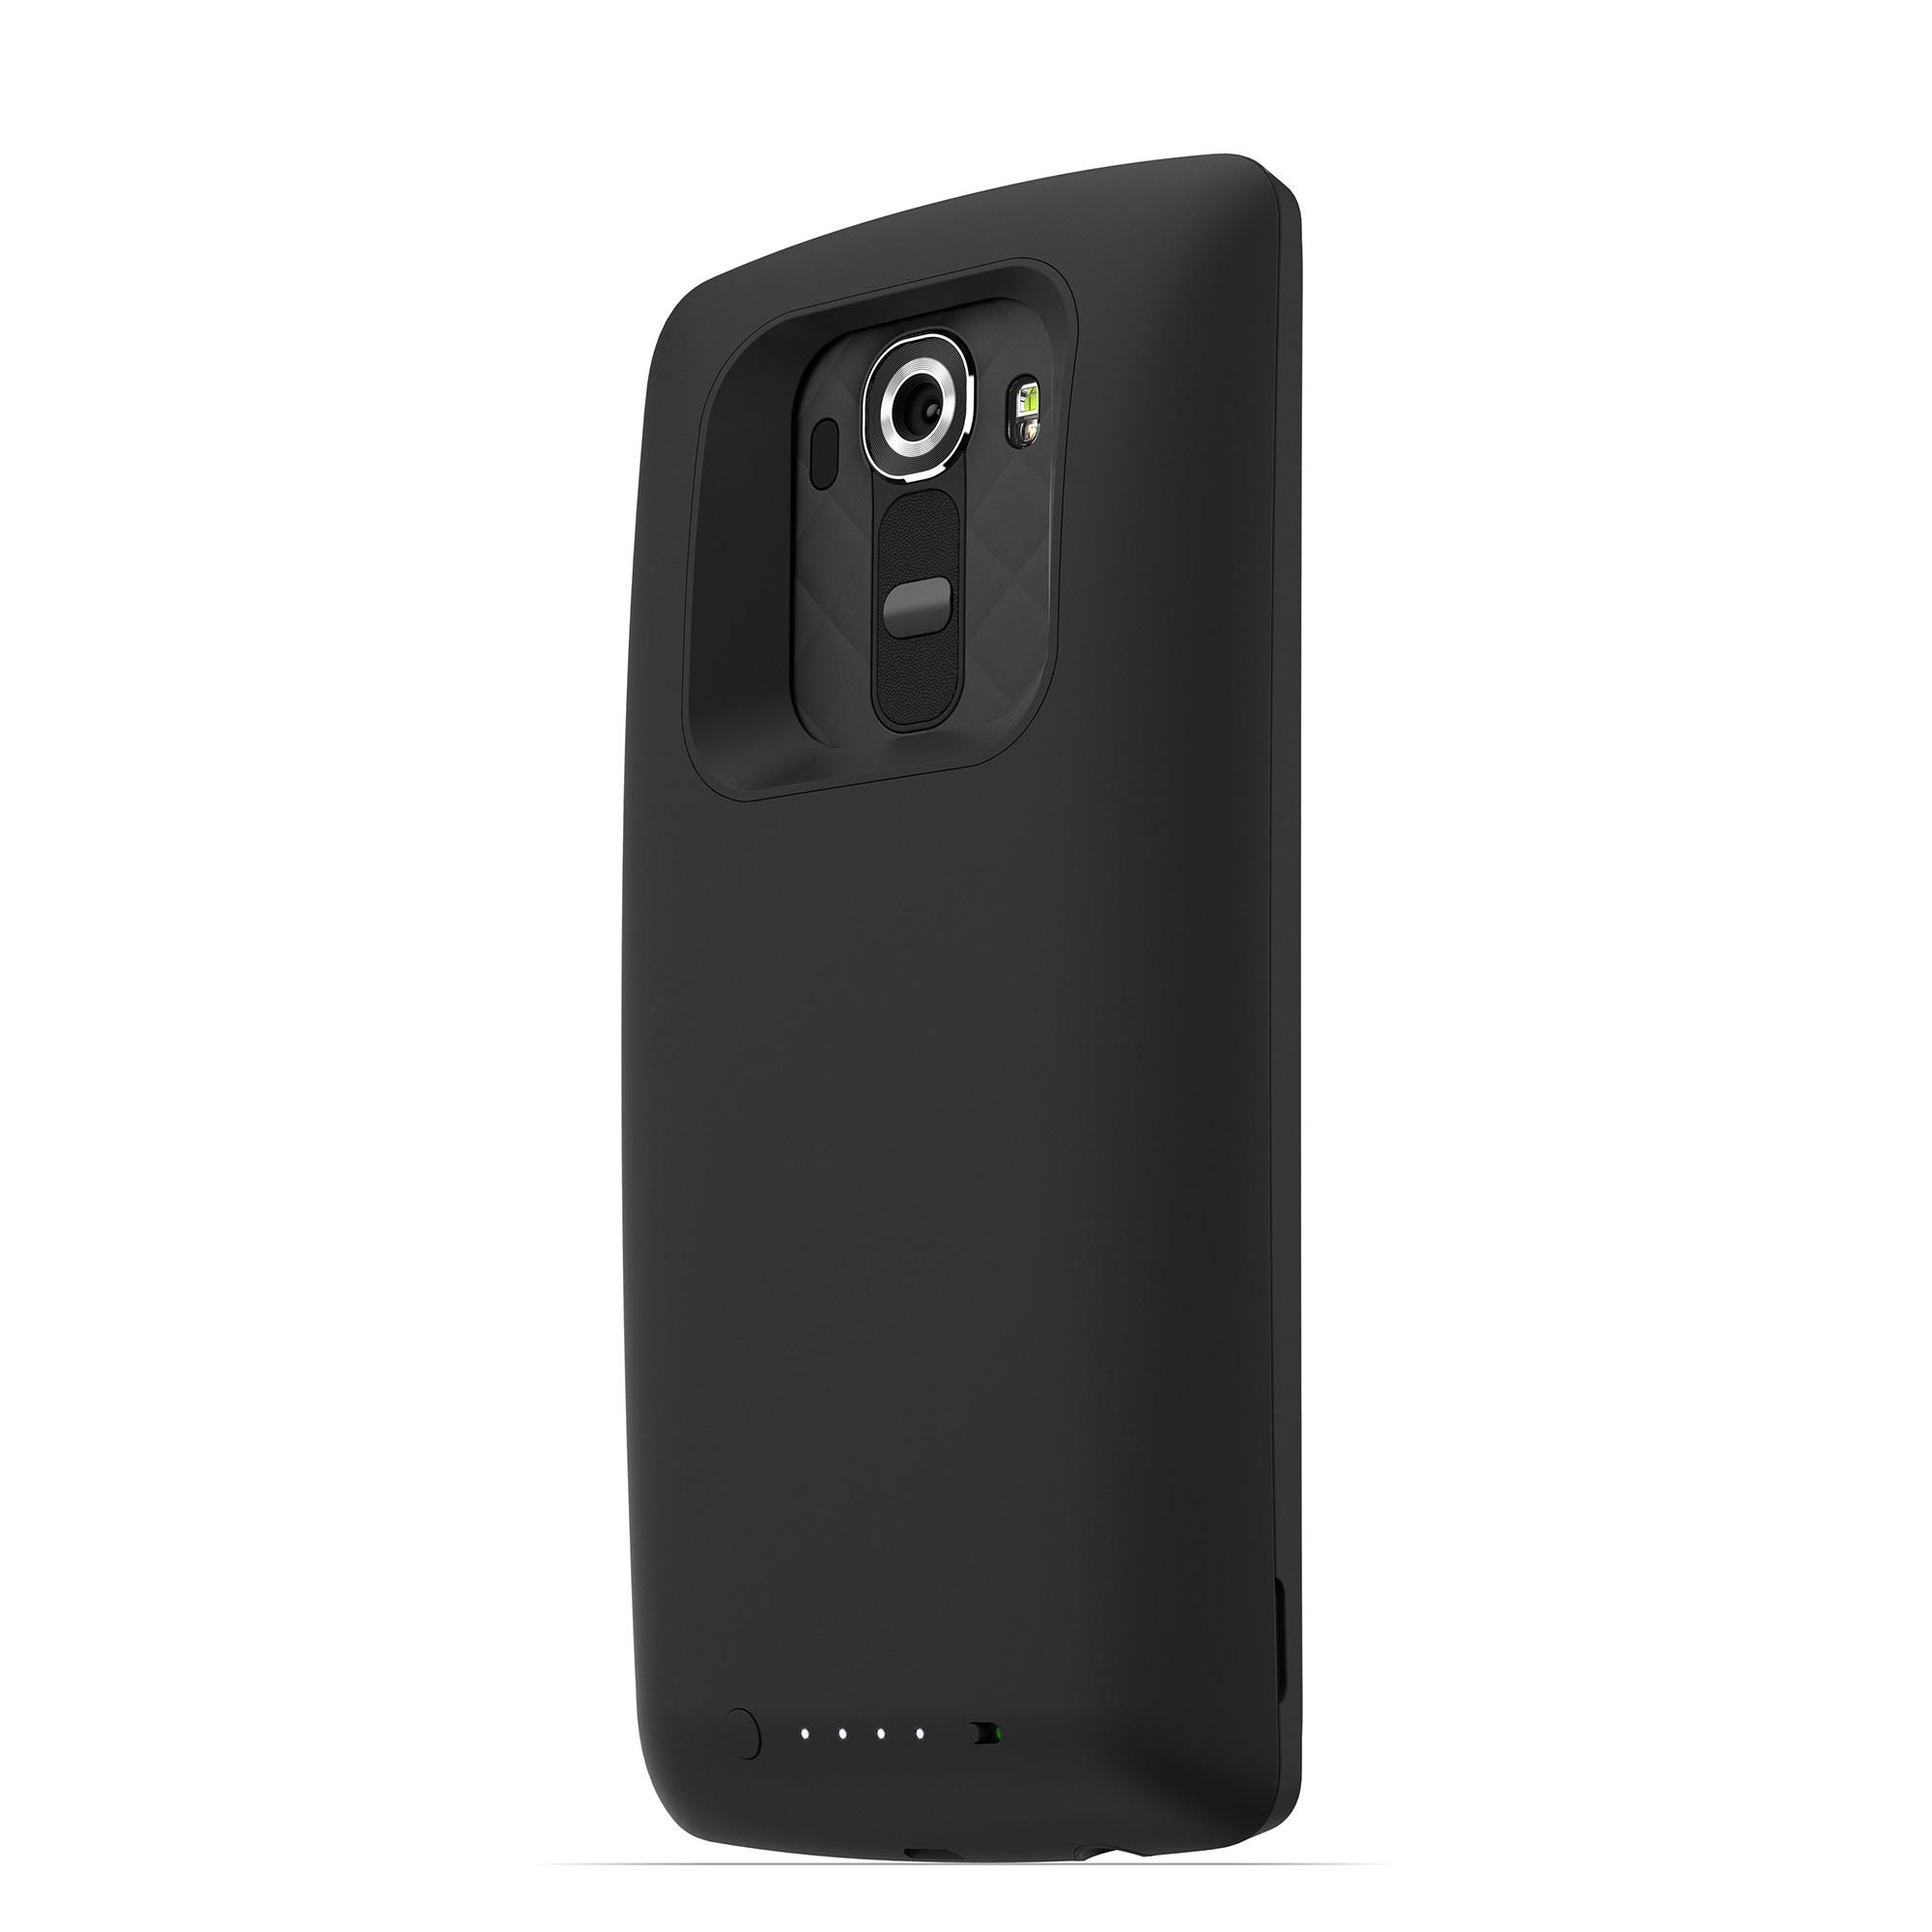 official photos 86868 f6e67 Mophie intros juice pack for the LG G4 - SlashGear